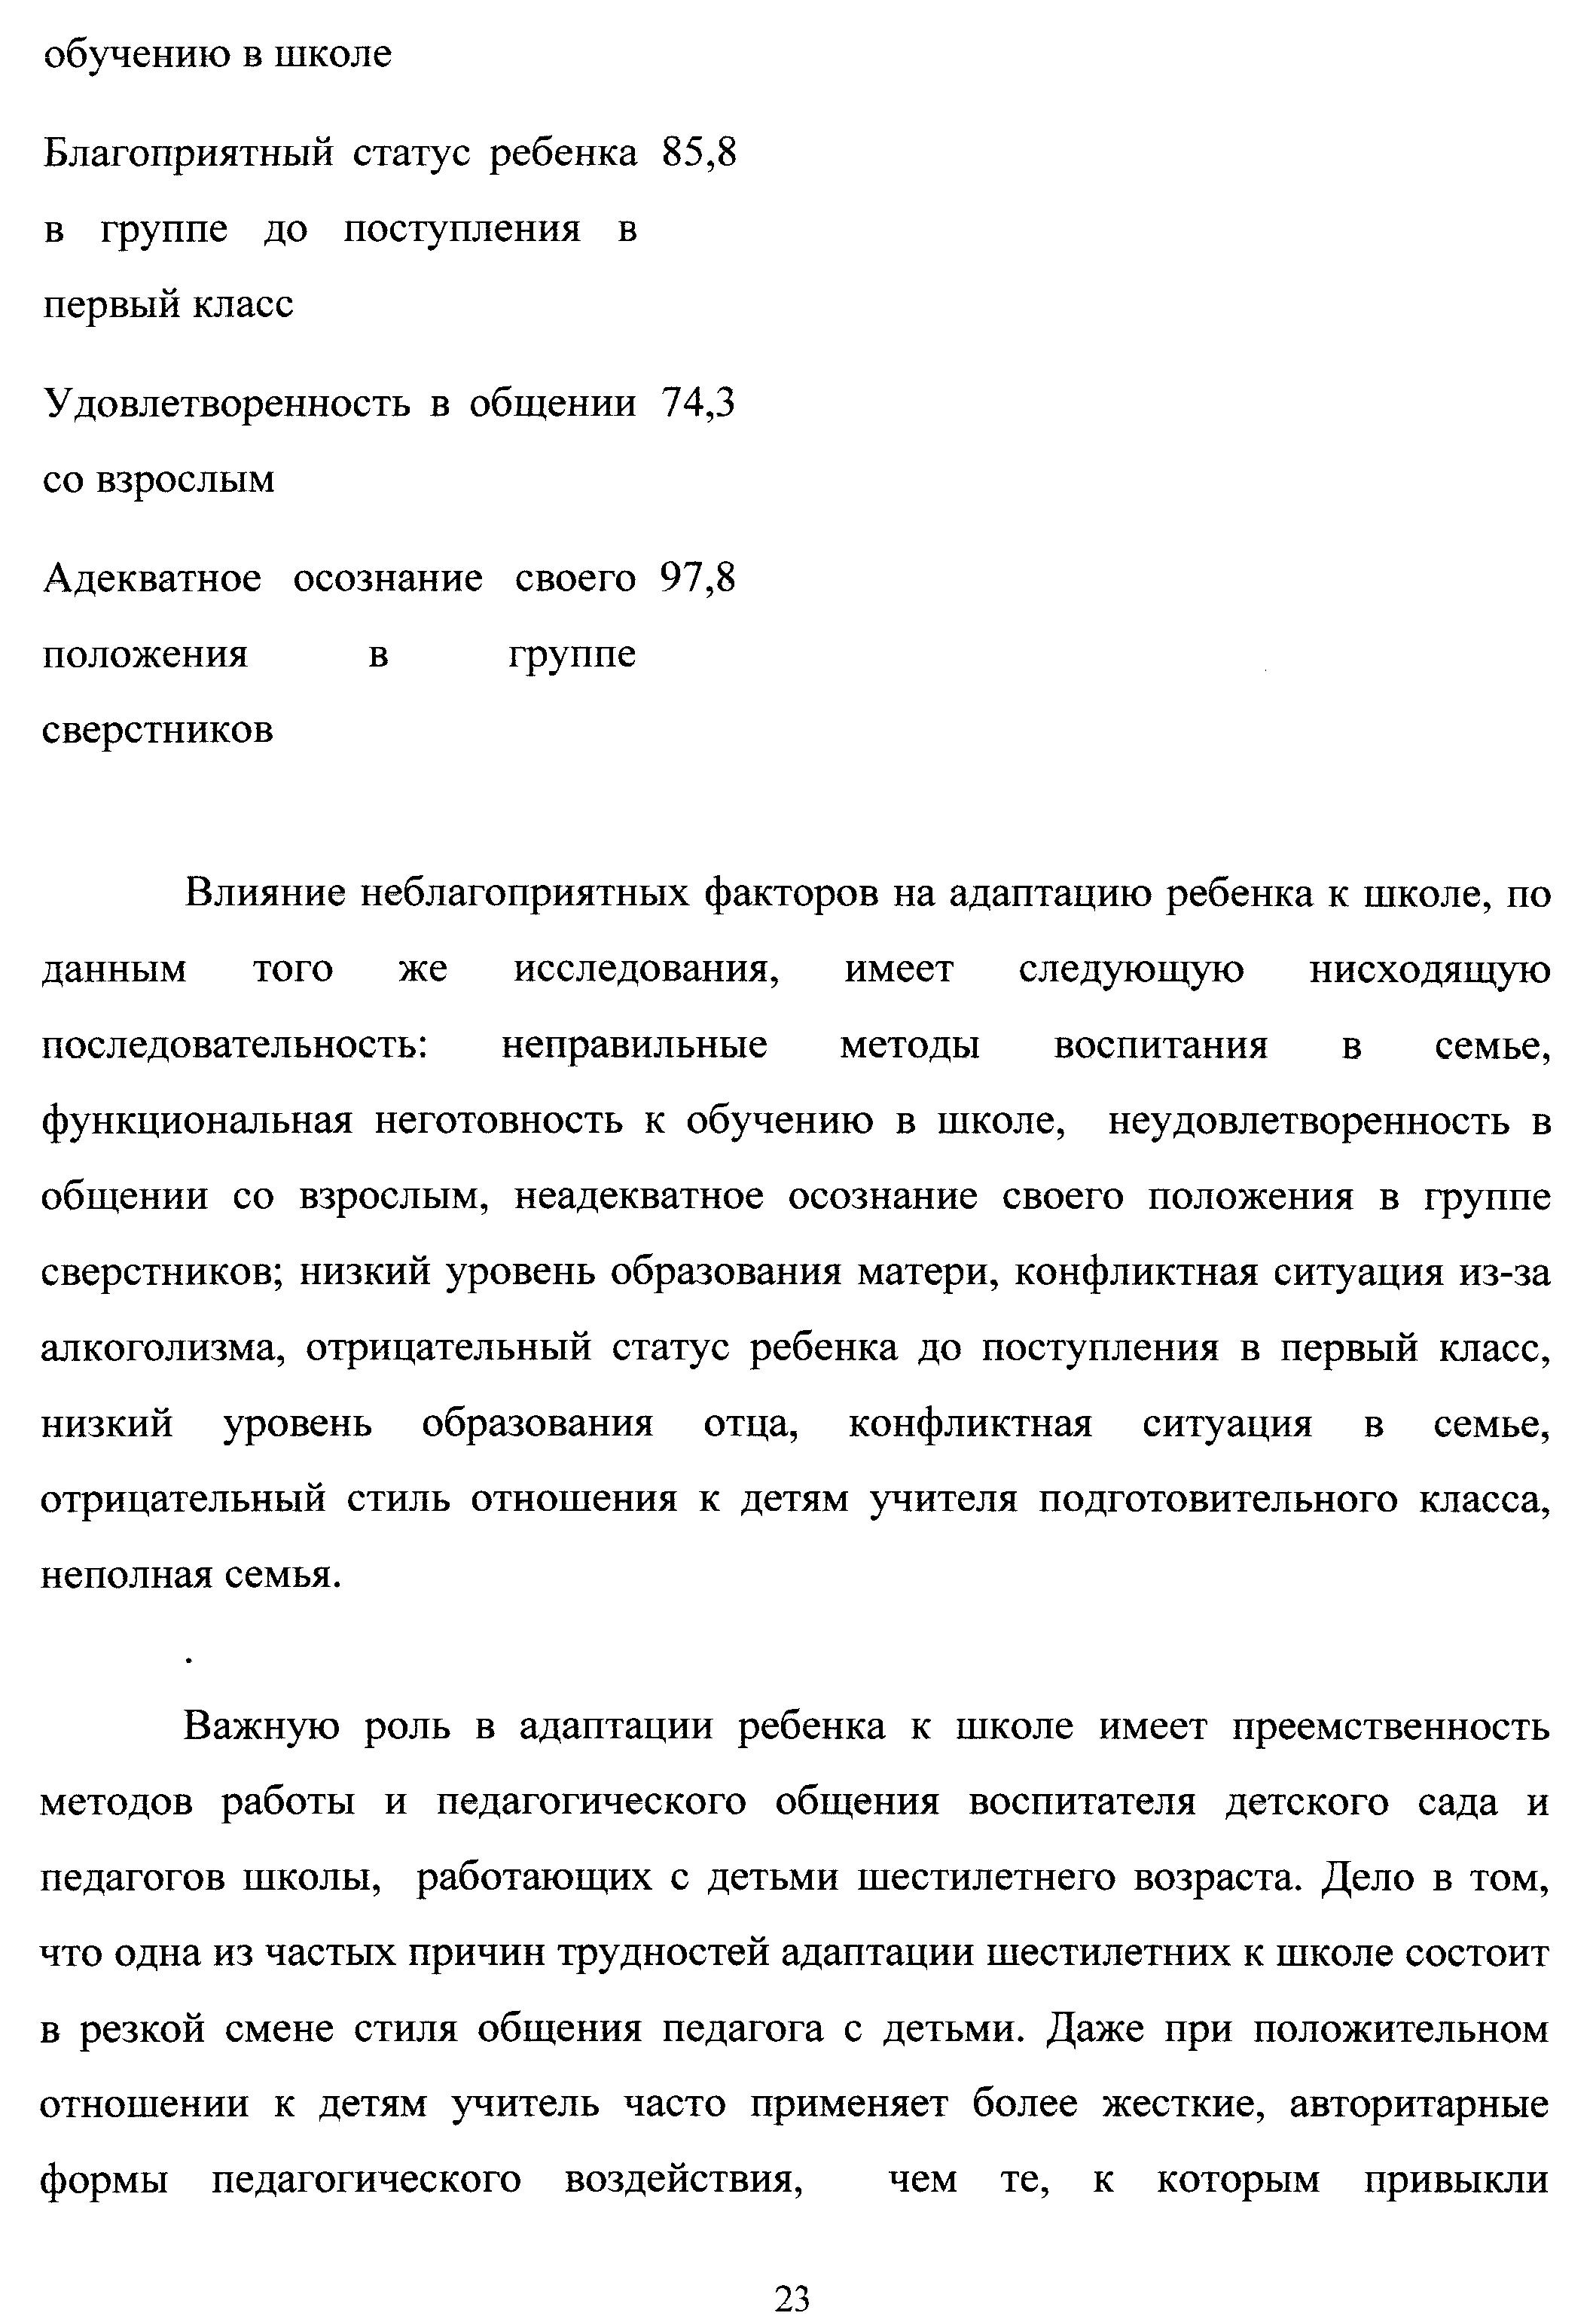 C:\Users\ЛАРИСА\Documents\Scanned Documents\Рисунок (127).jpg